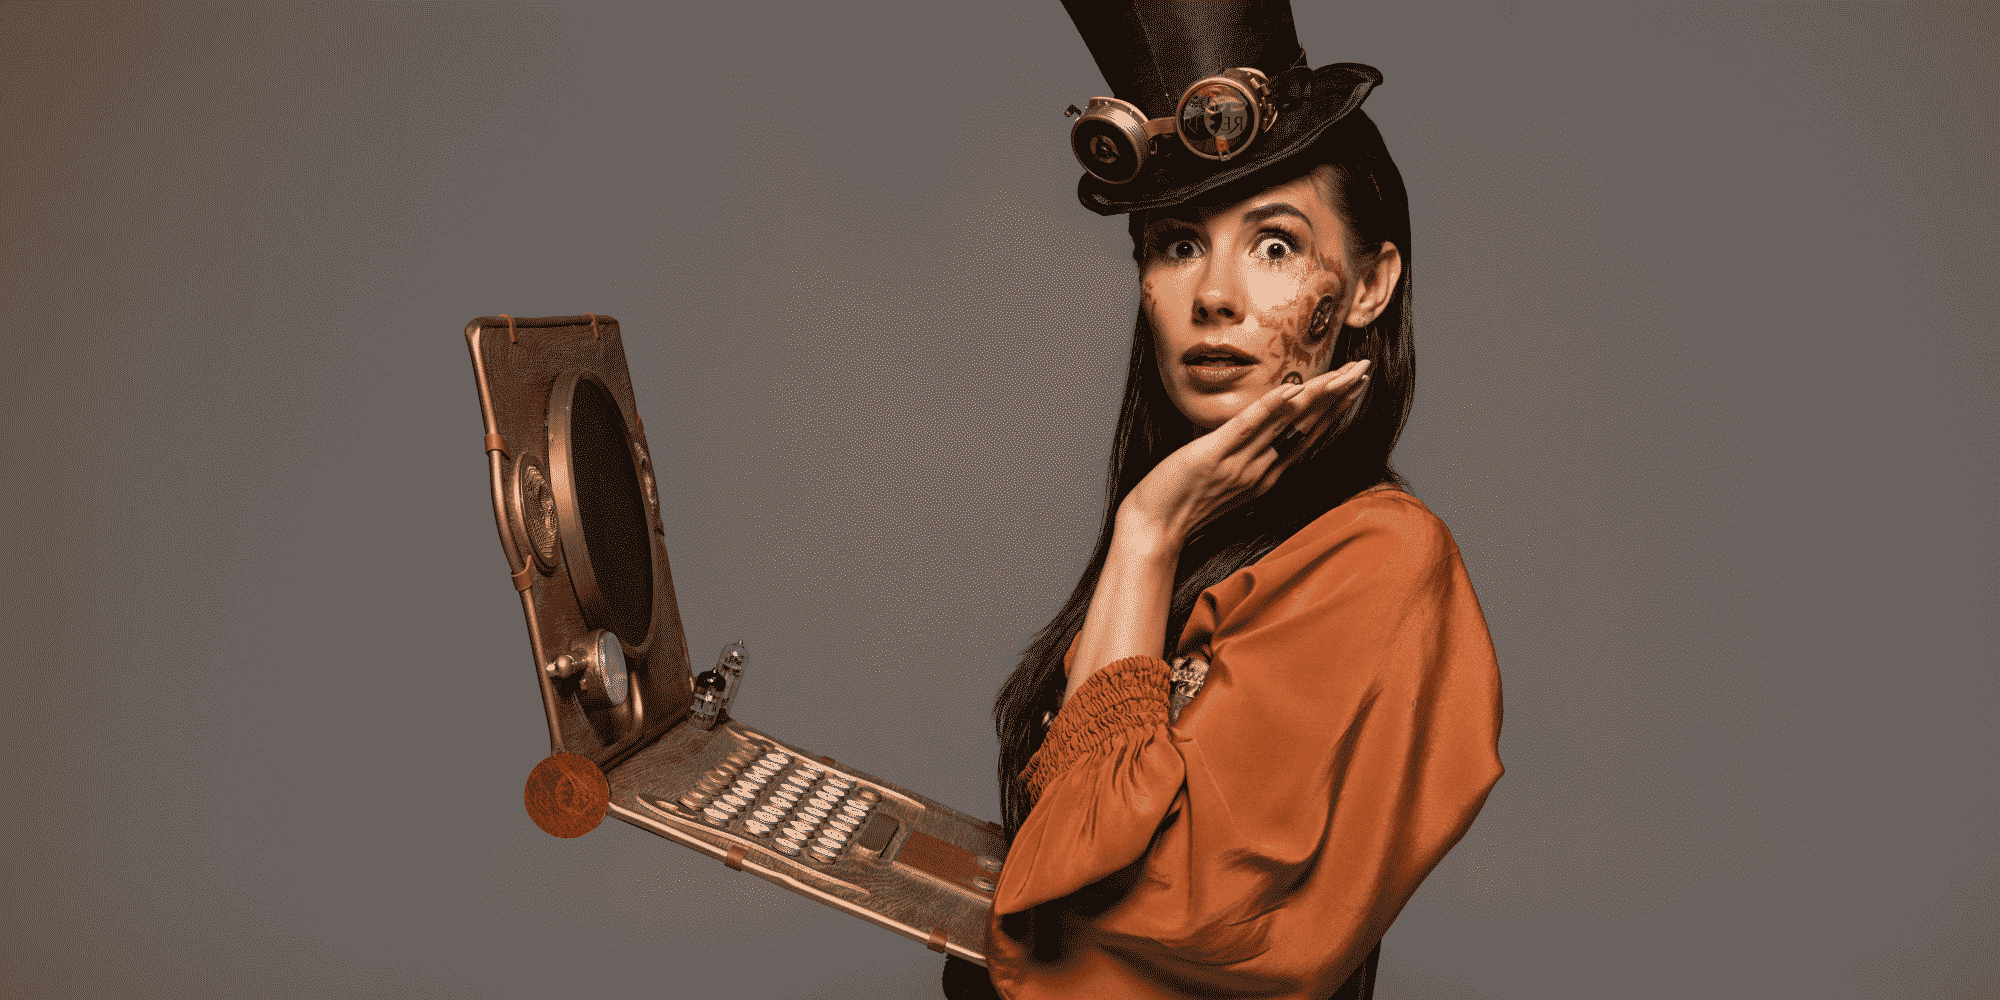 Woman With Shocked Expression and Computer (Steampunk)